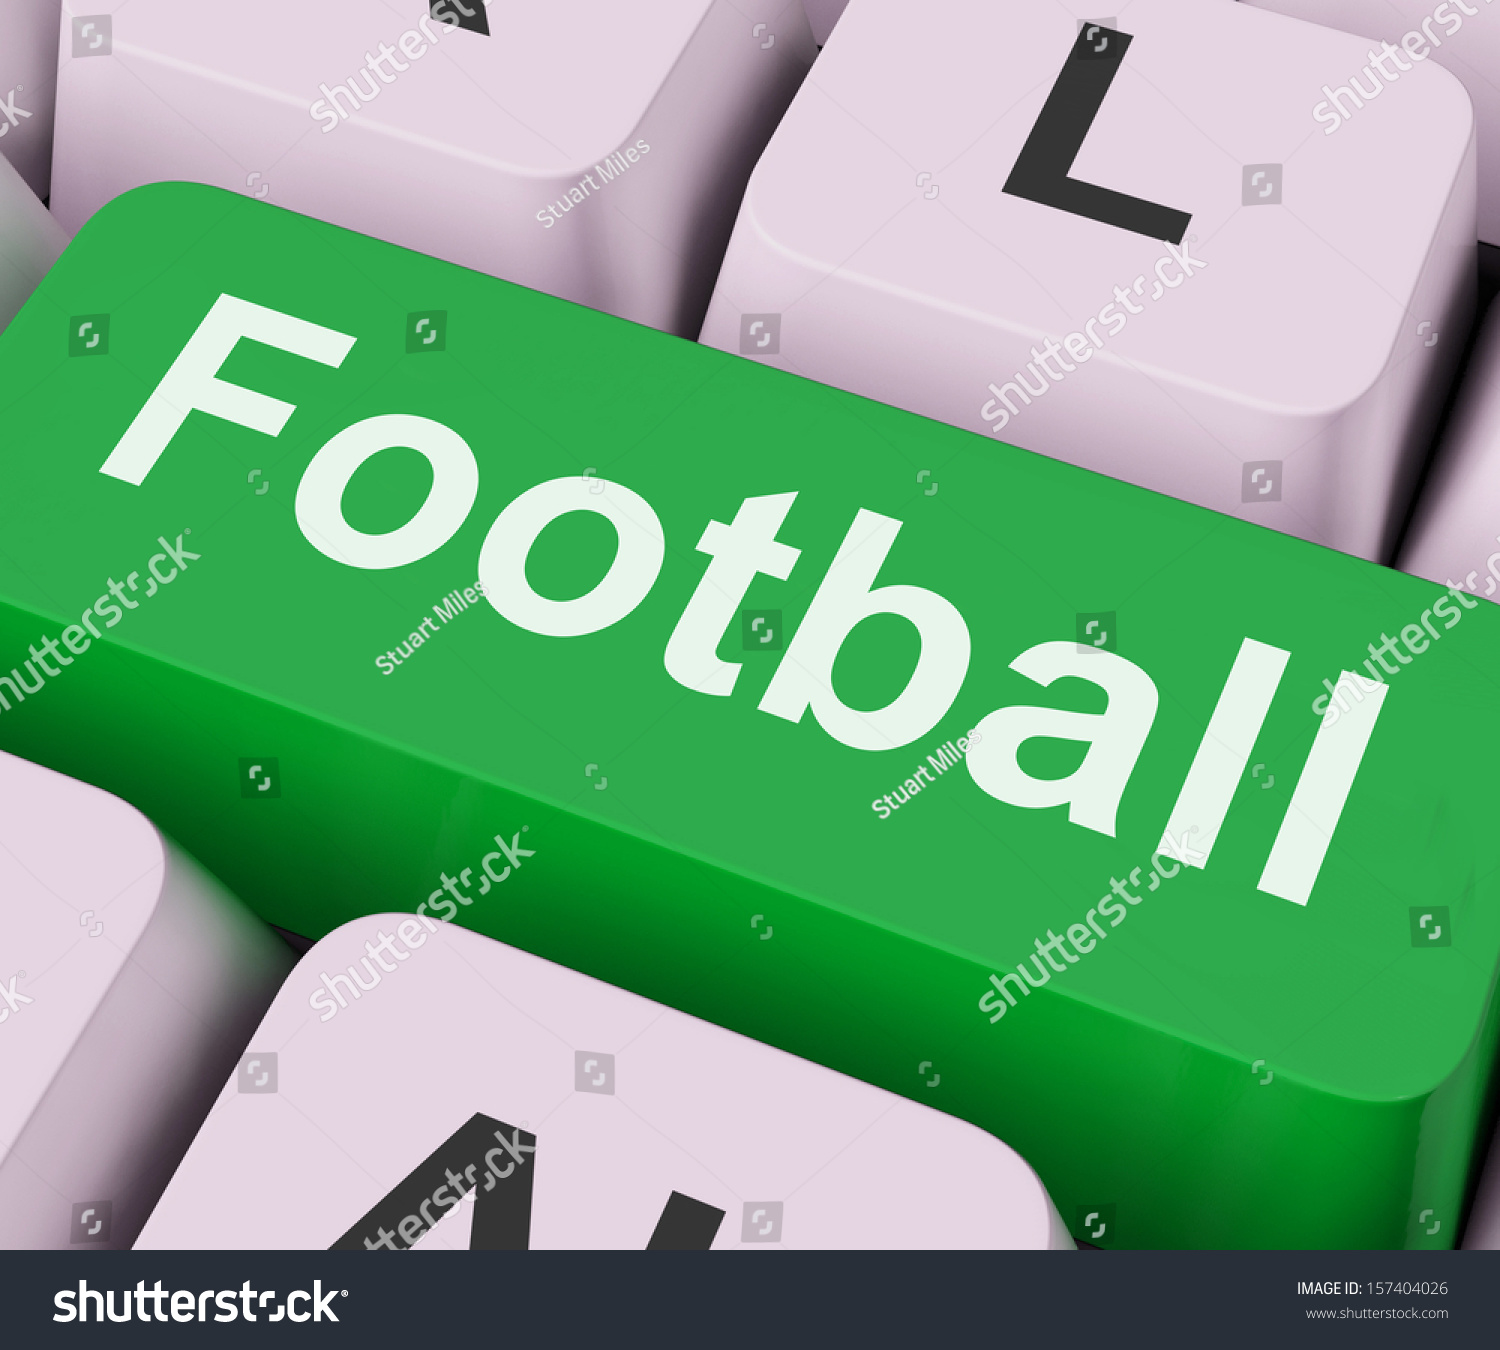 Football key on keyboard meaning american stock illustration football key on keyboard meaning american rugby or soccer biocorpaavc Image collections